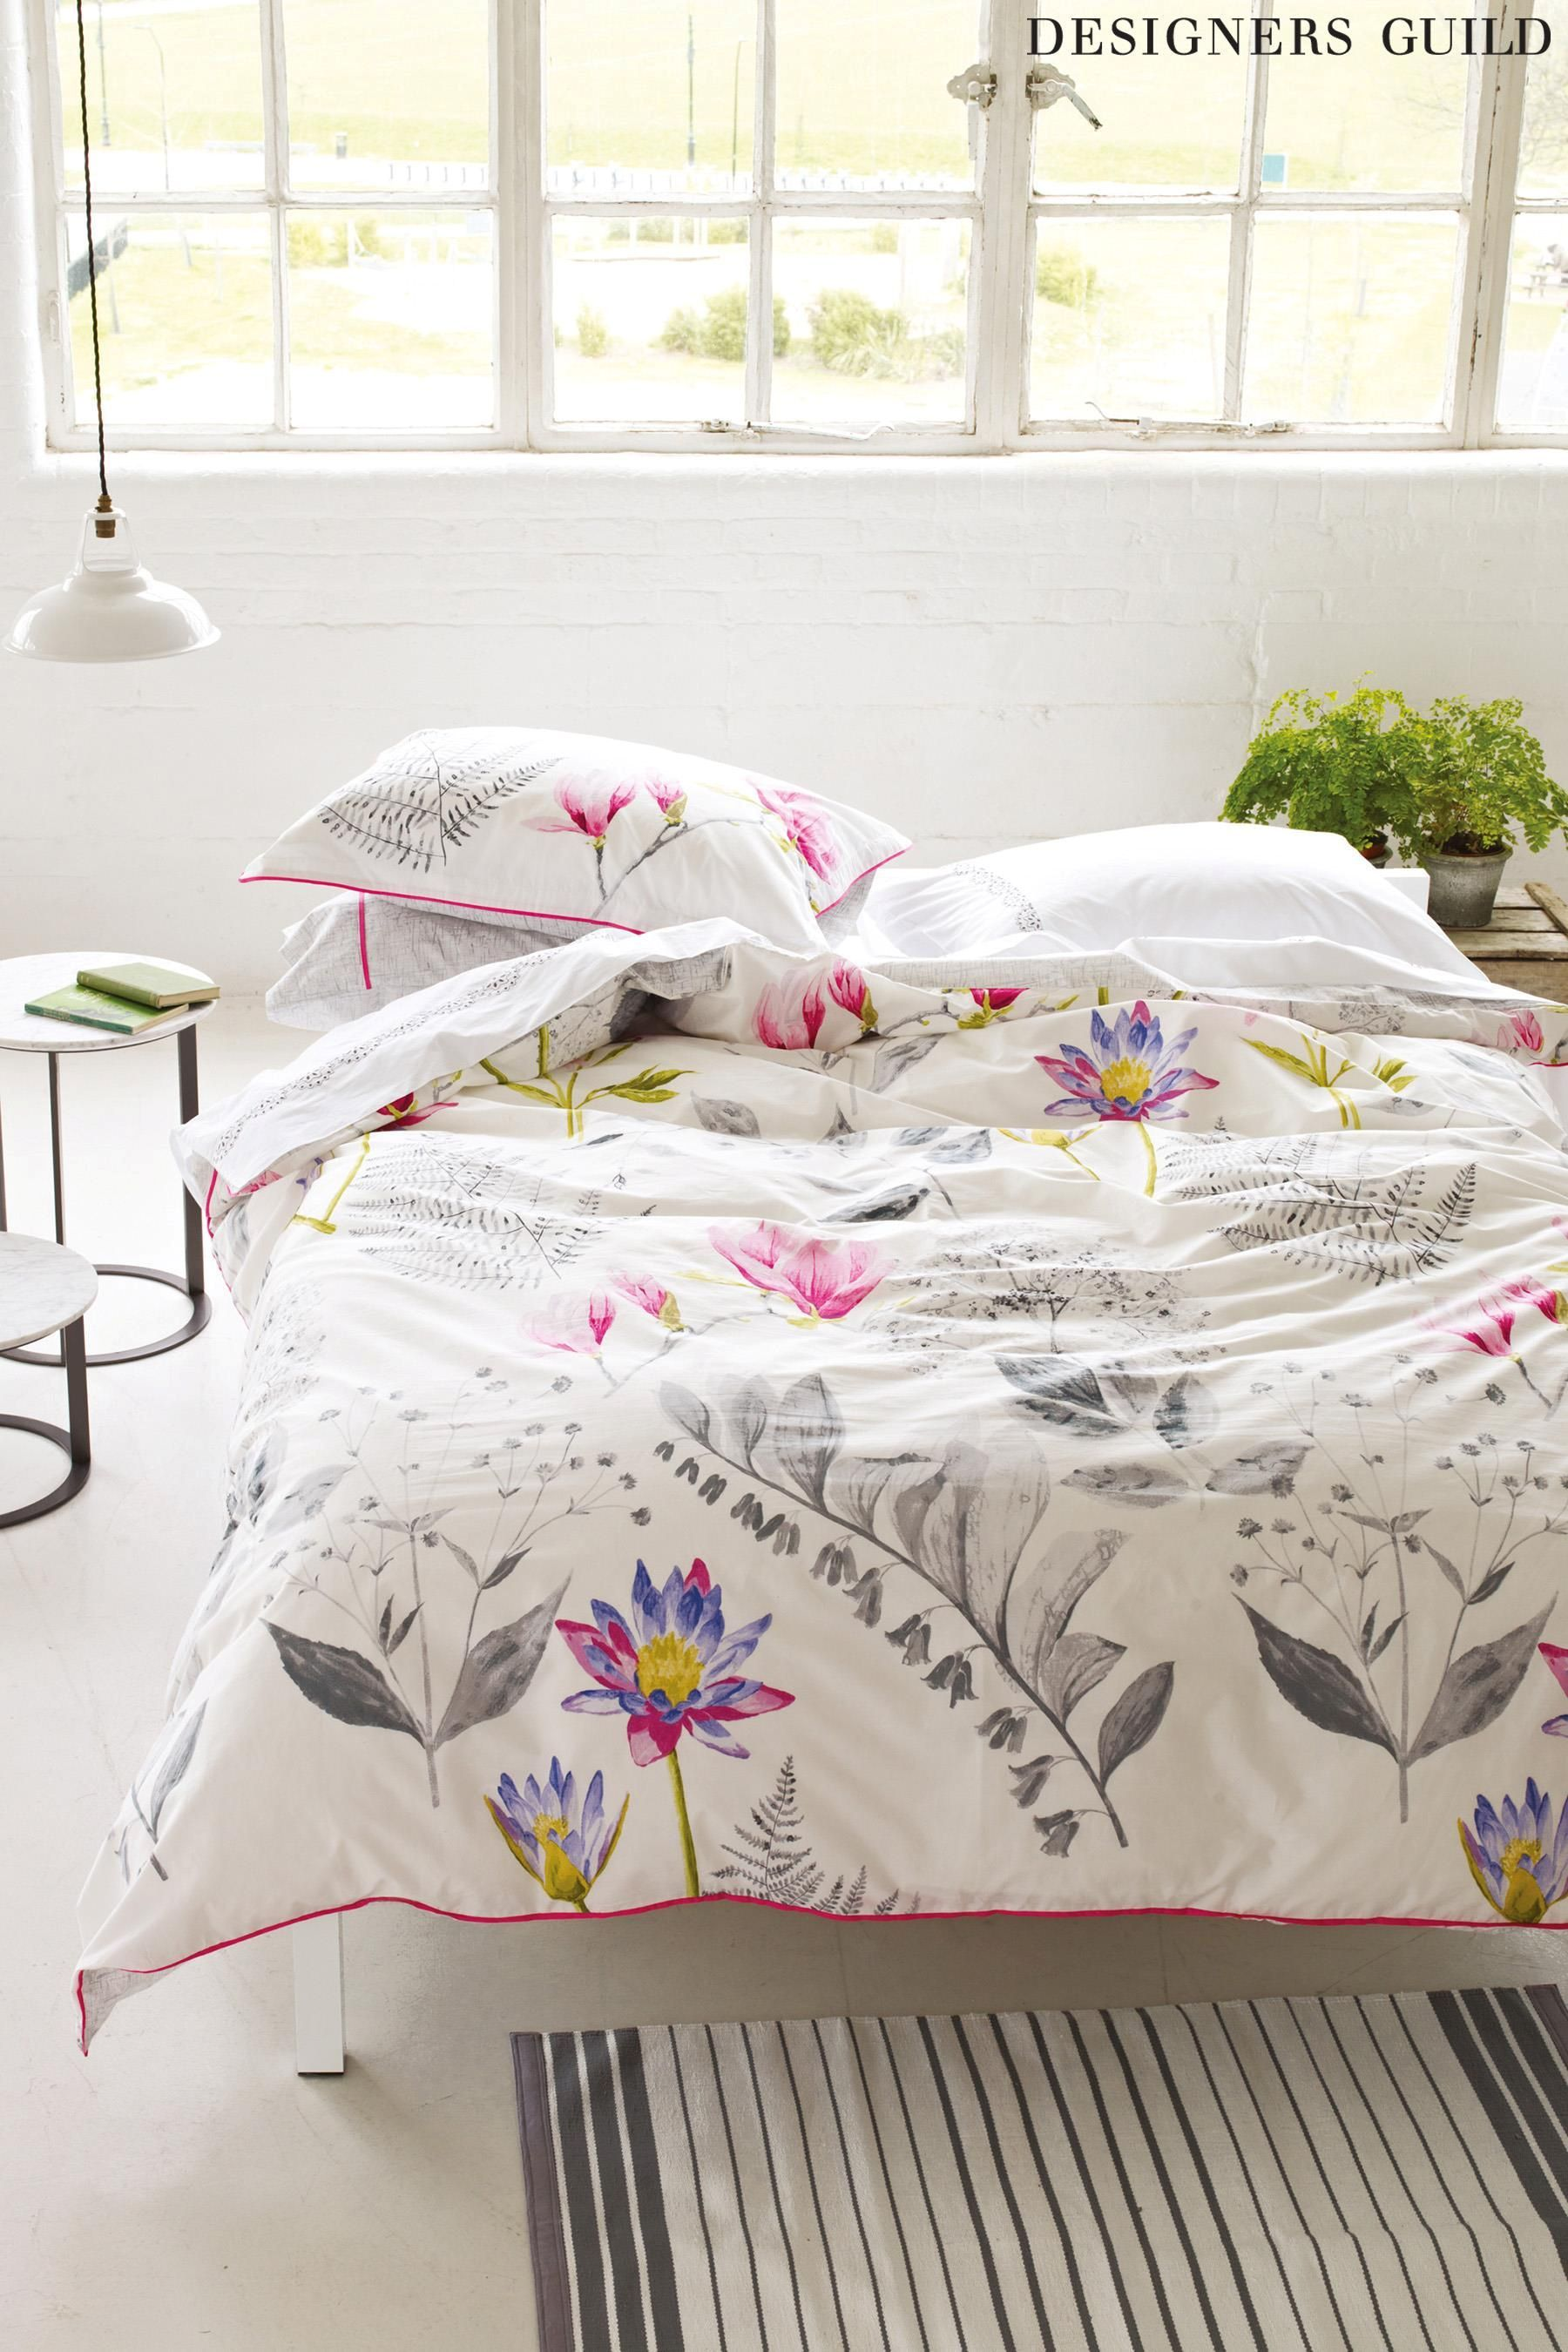 Designers Guild Mokuren Duvet Cover From The Next Uk Online